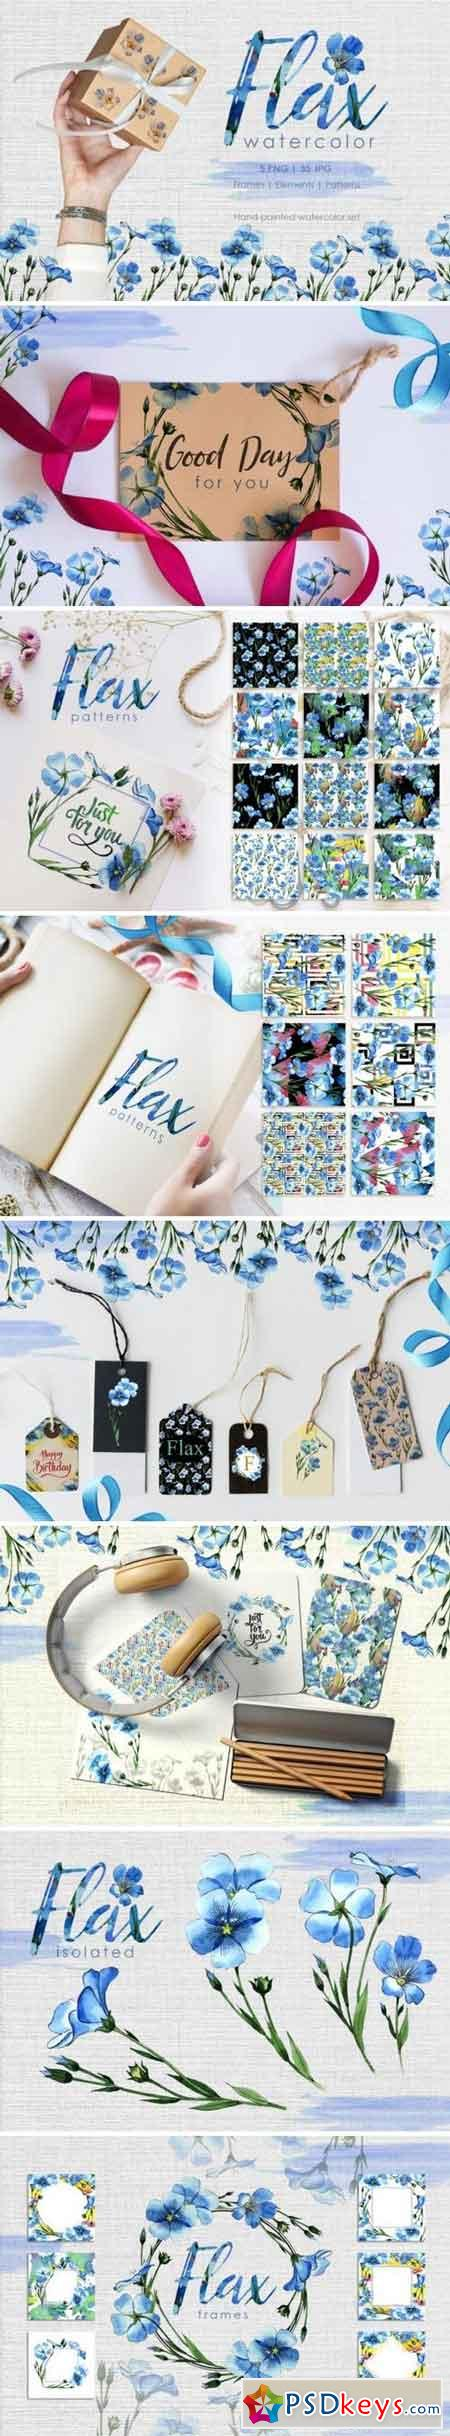 Flax blue Watercolor png 3358680